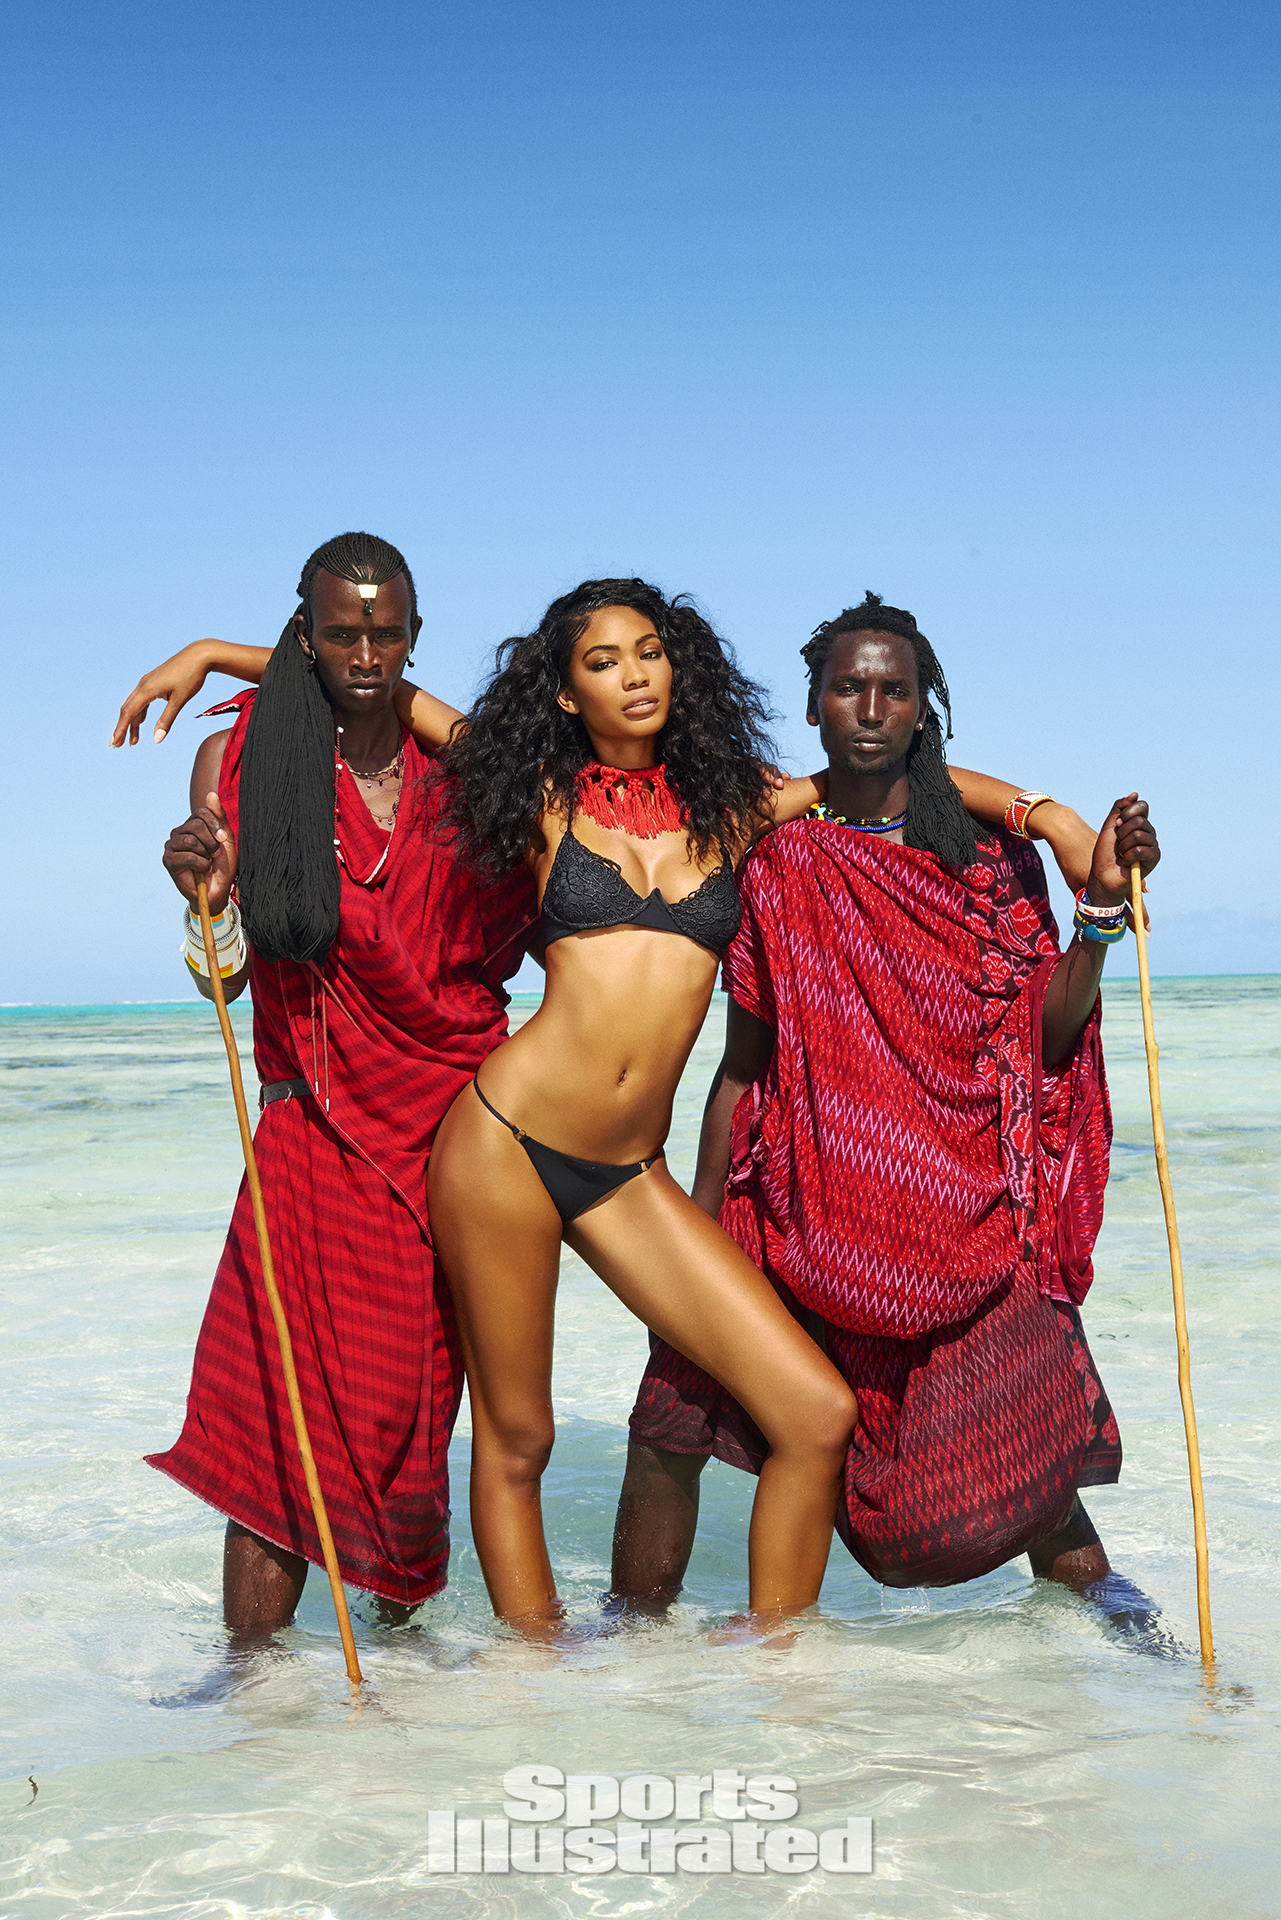 Chanel Iman was photographed by Ruven Afanador in Zanzibar. Swimsuit by Blue Life Swim.